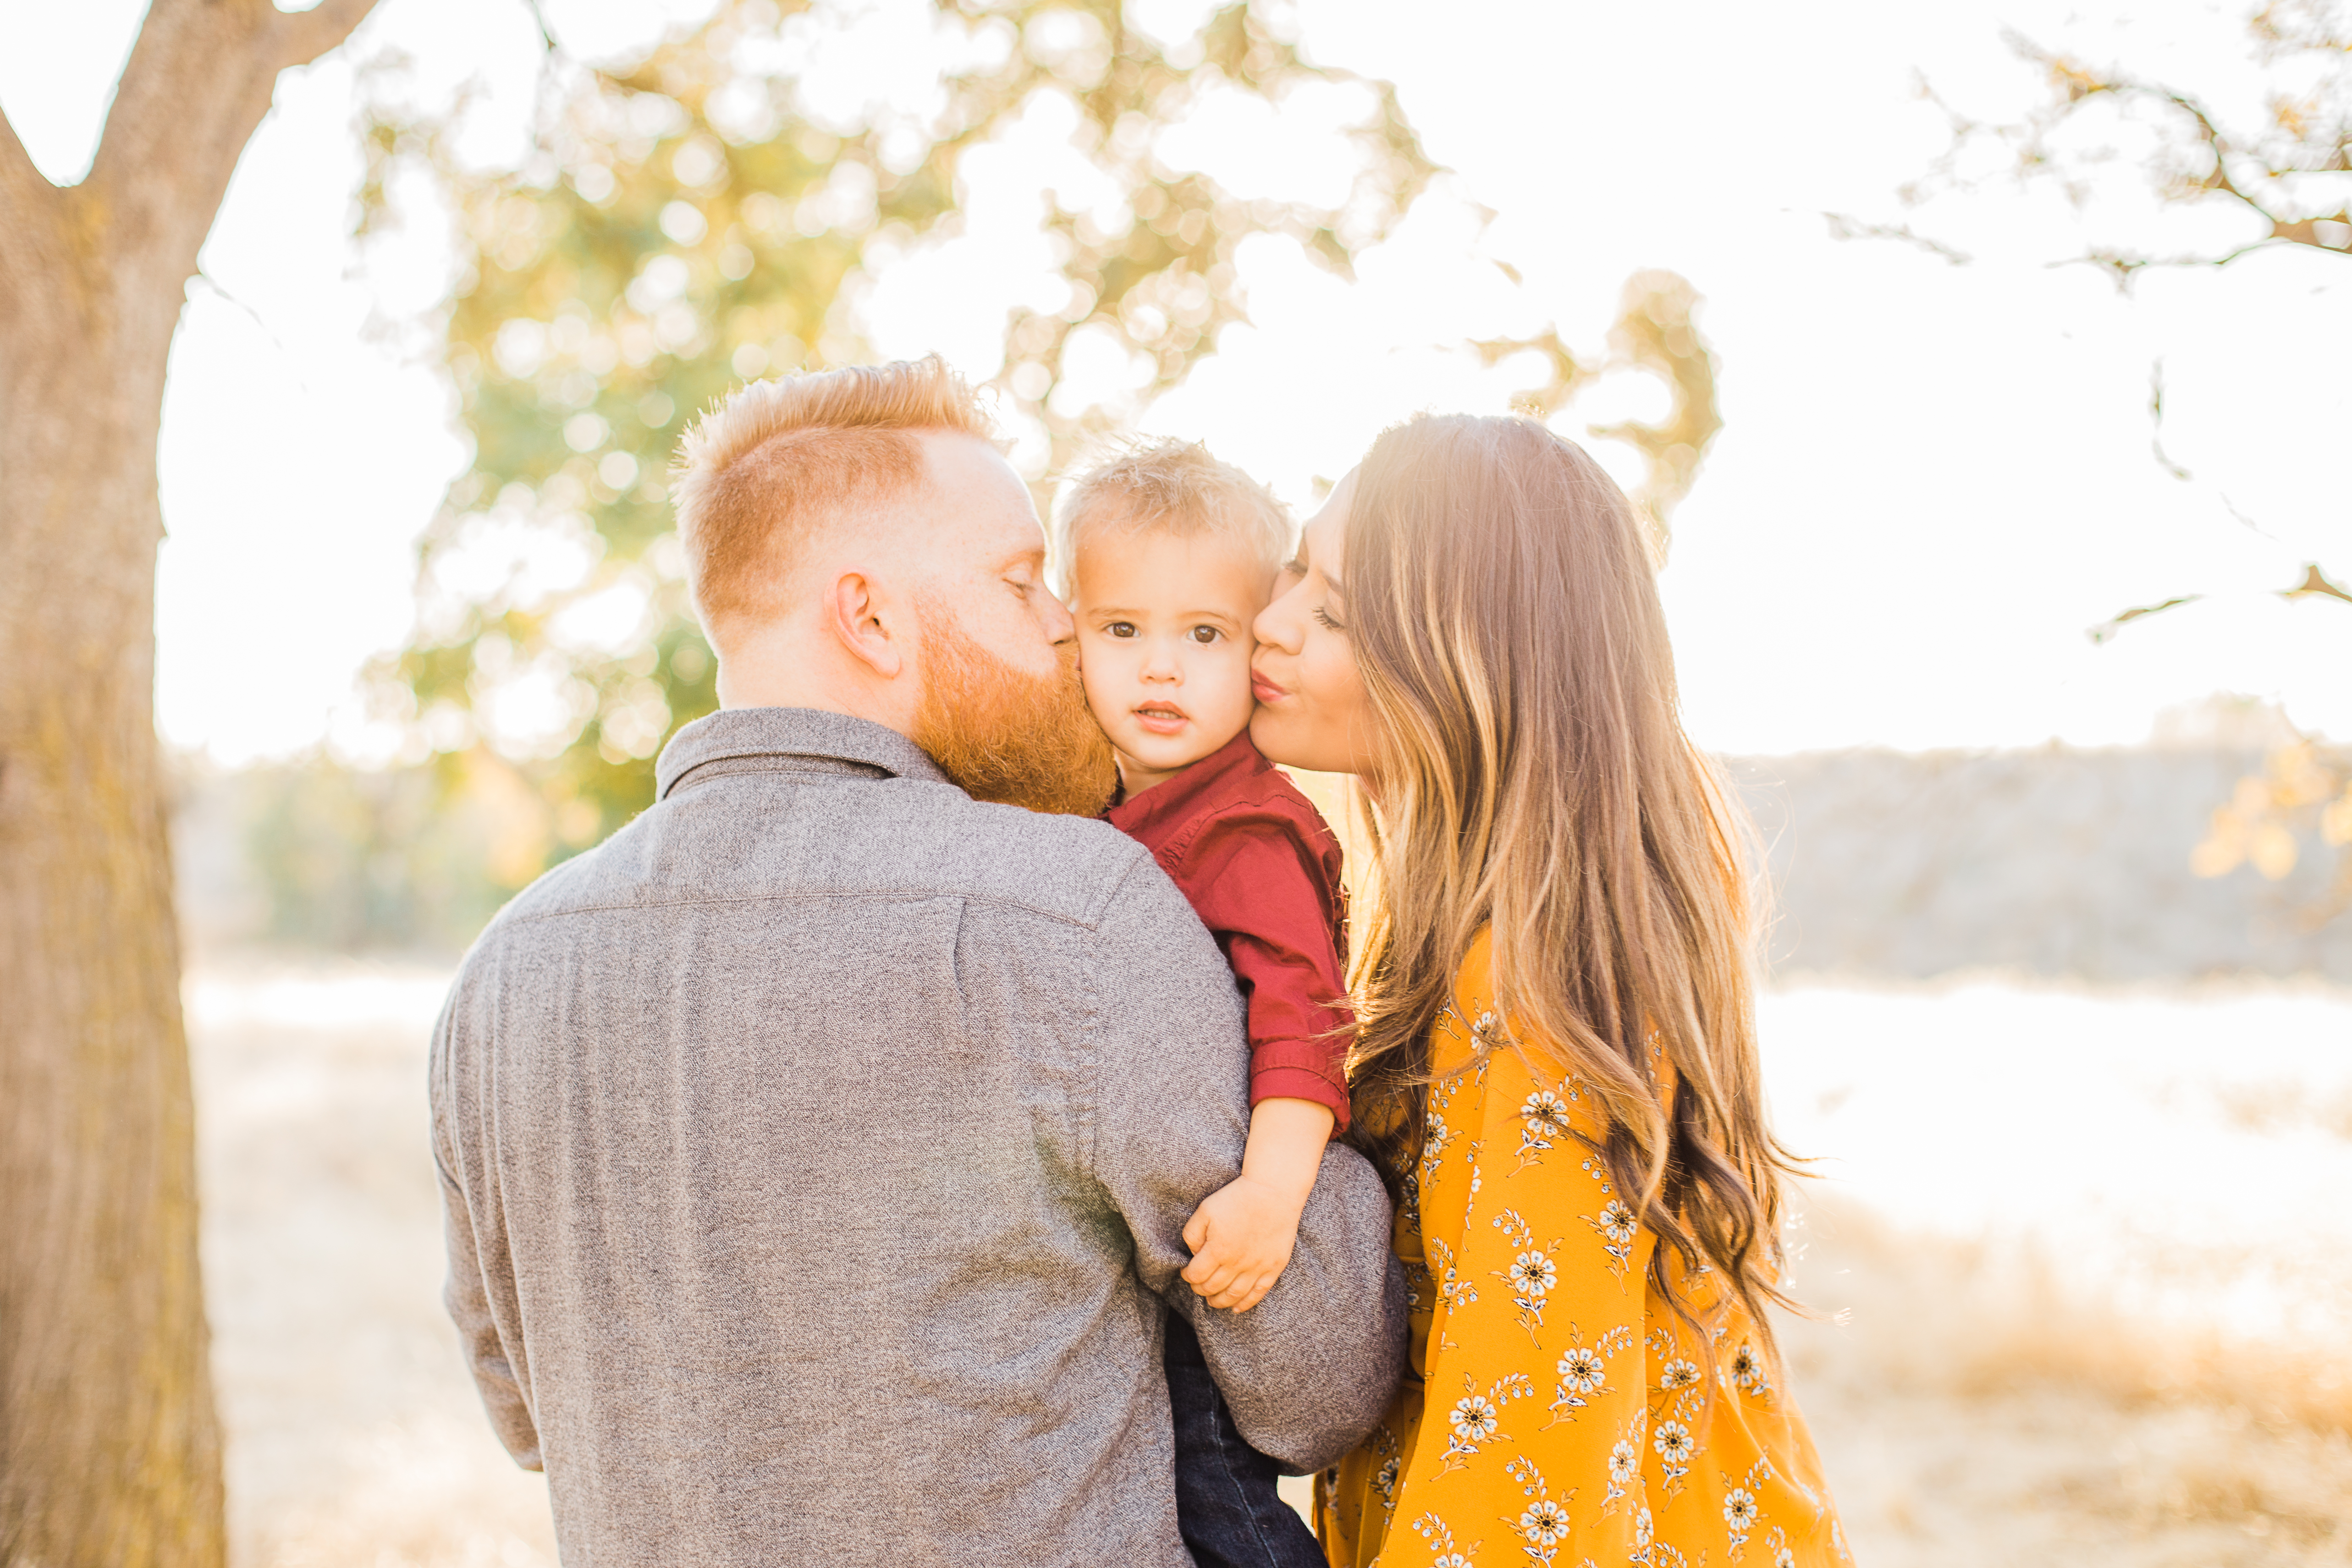 15 Tips for Taking Great Family Photos